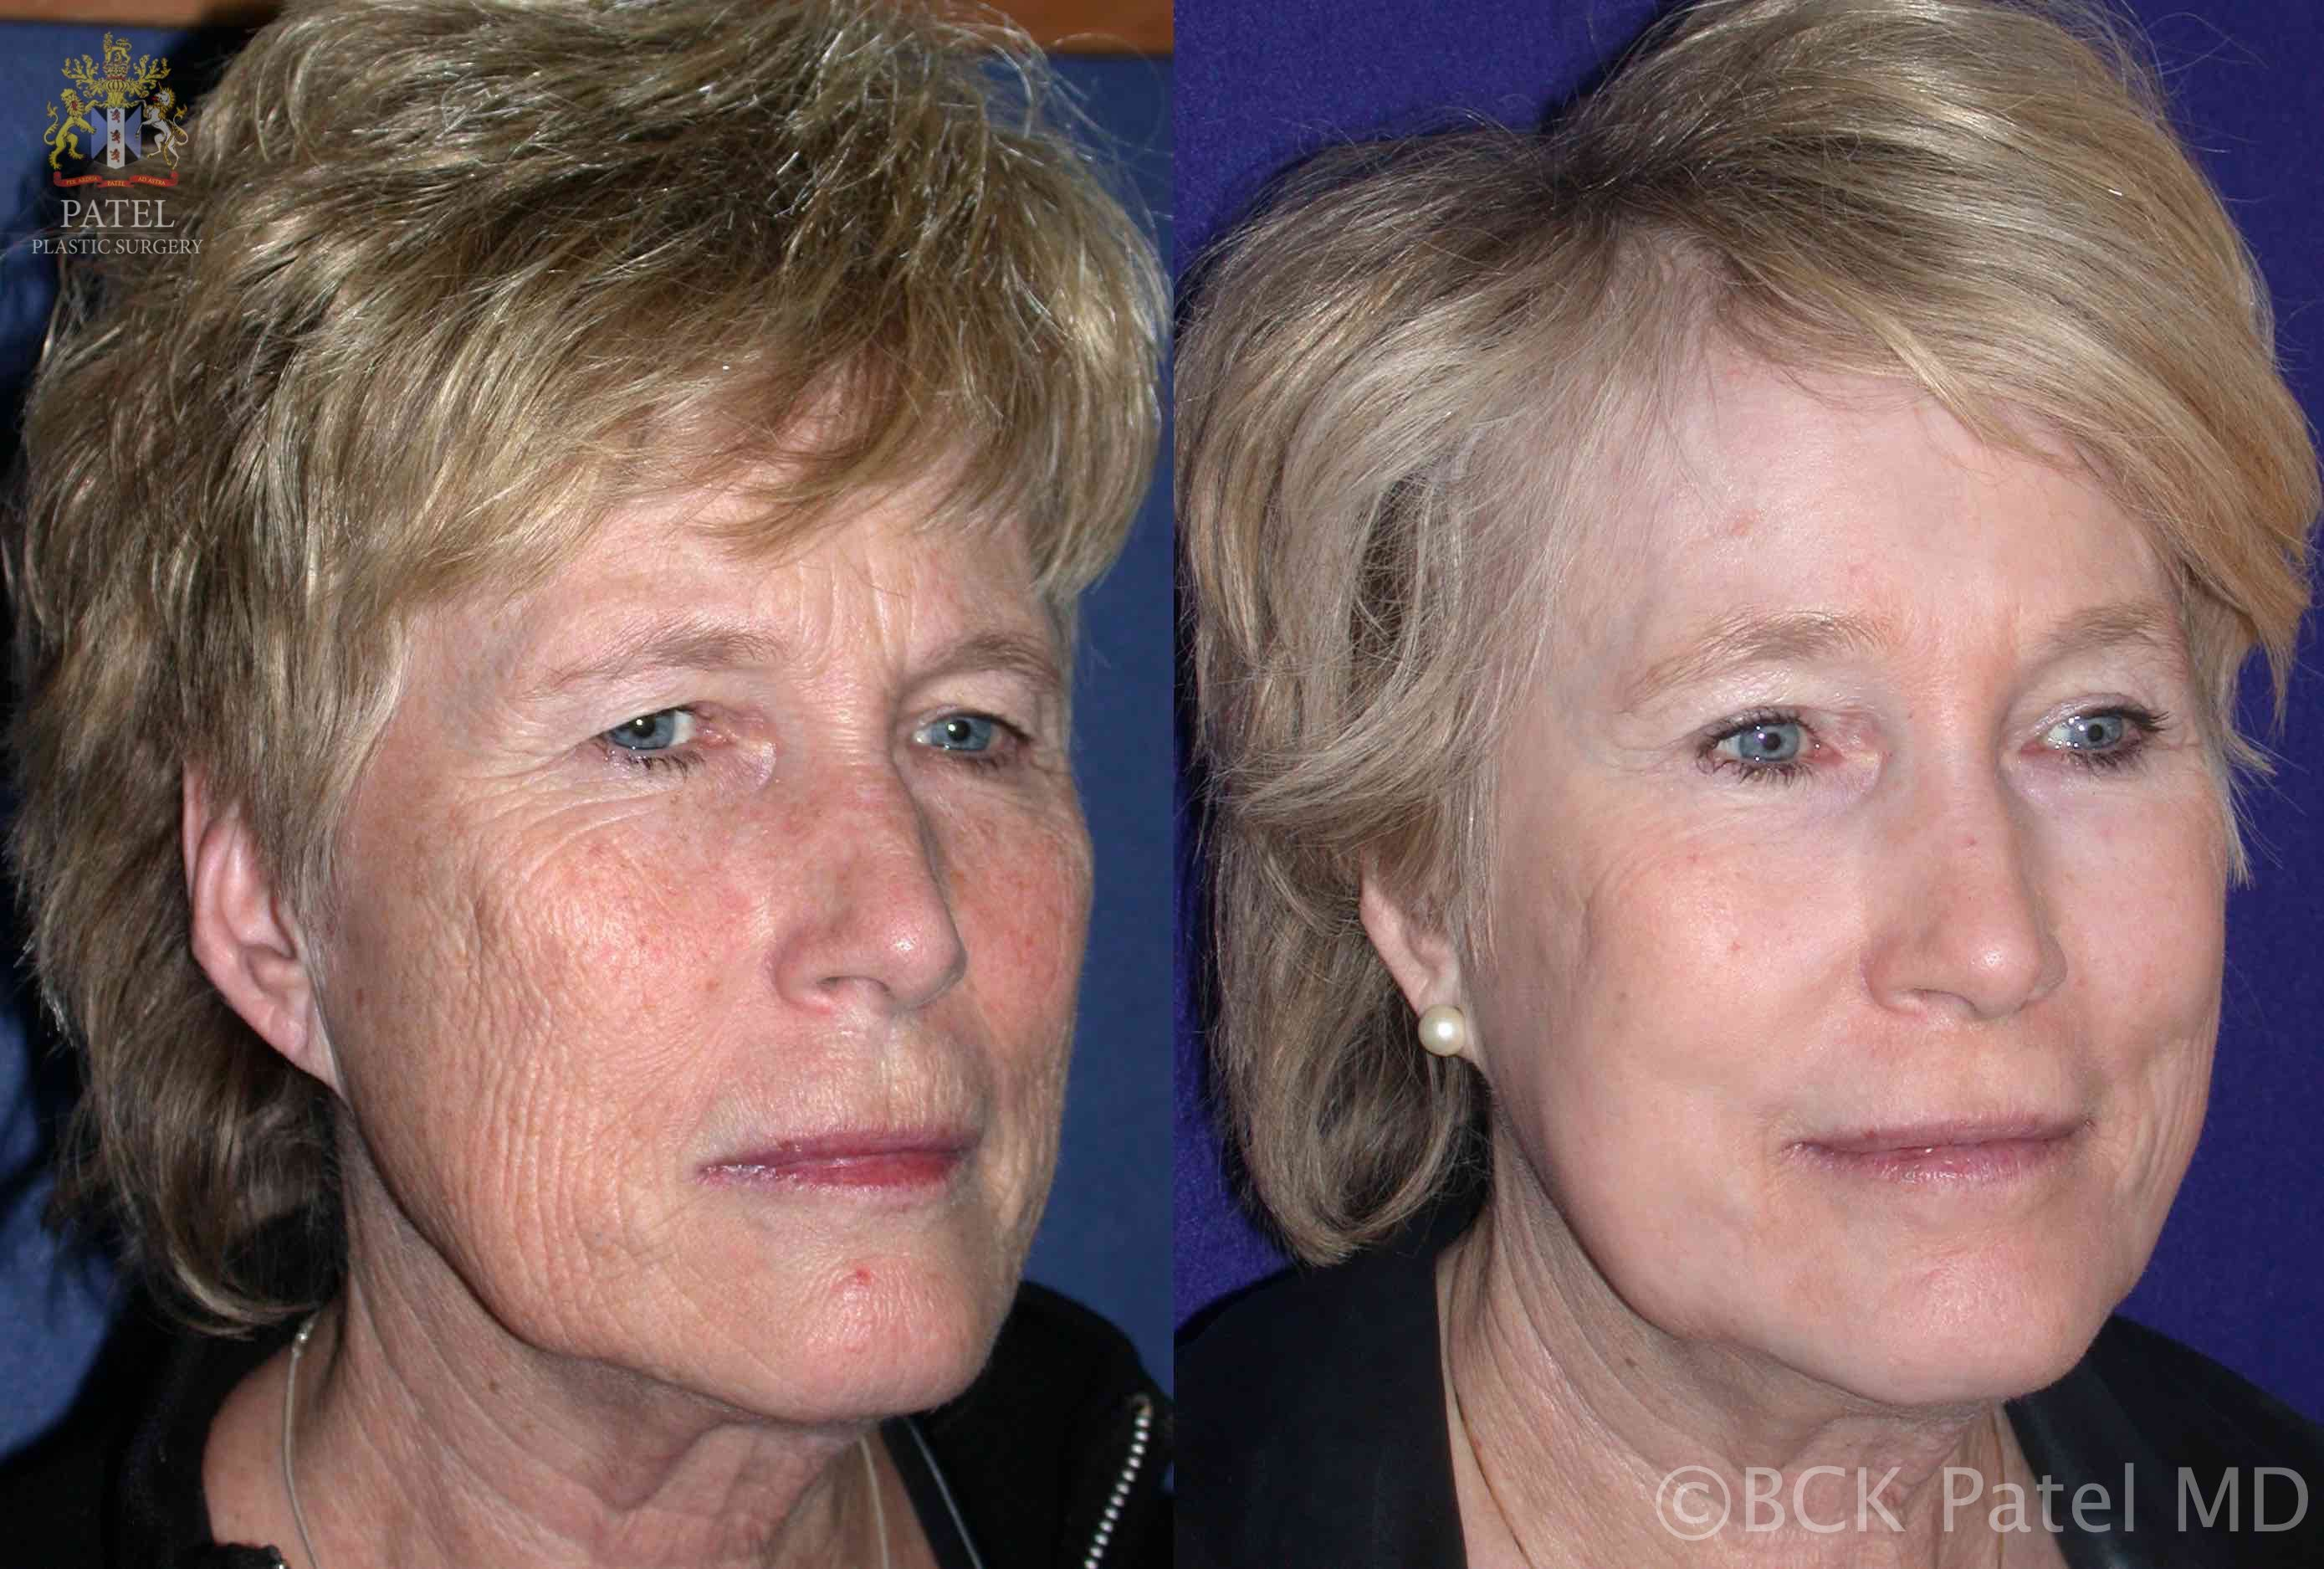 Long-term followup of the full face after fractionated CO2 laser treatment by Dr. BCK Patel MD, FRCS, Salt Lake City, London, St George